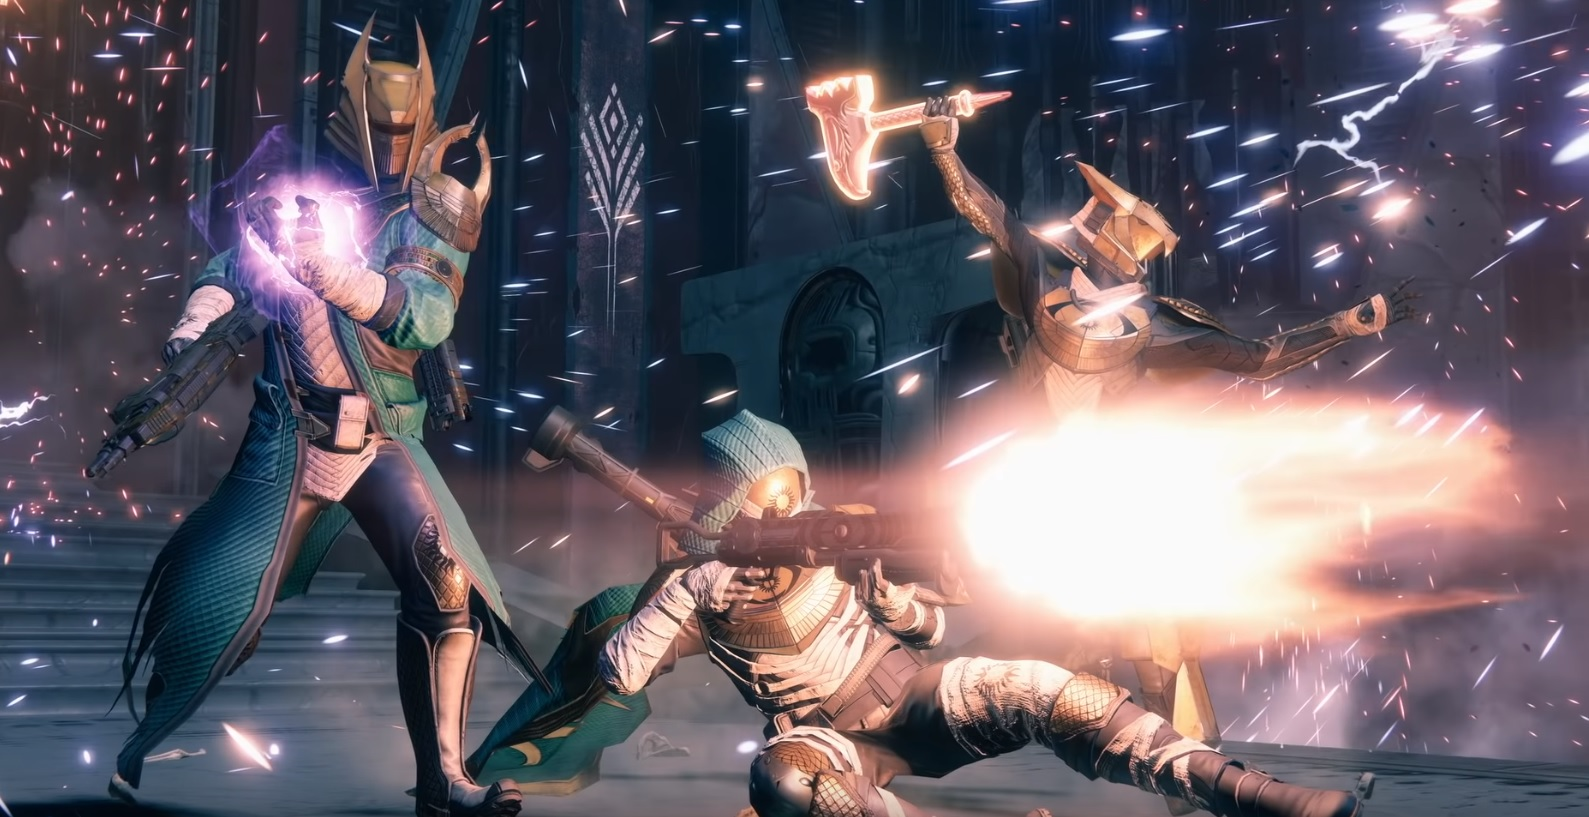 Destiny 2 is bringing back Trials of Osiris with its new season screenshot